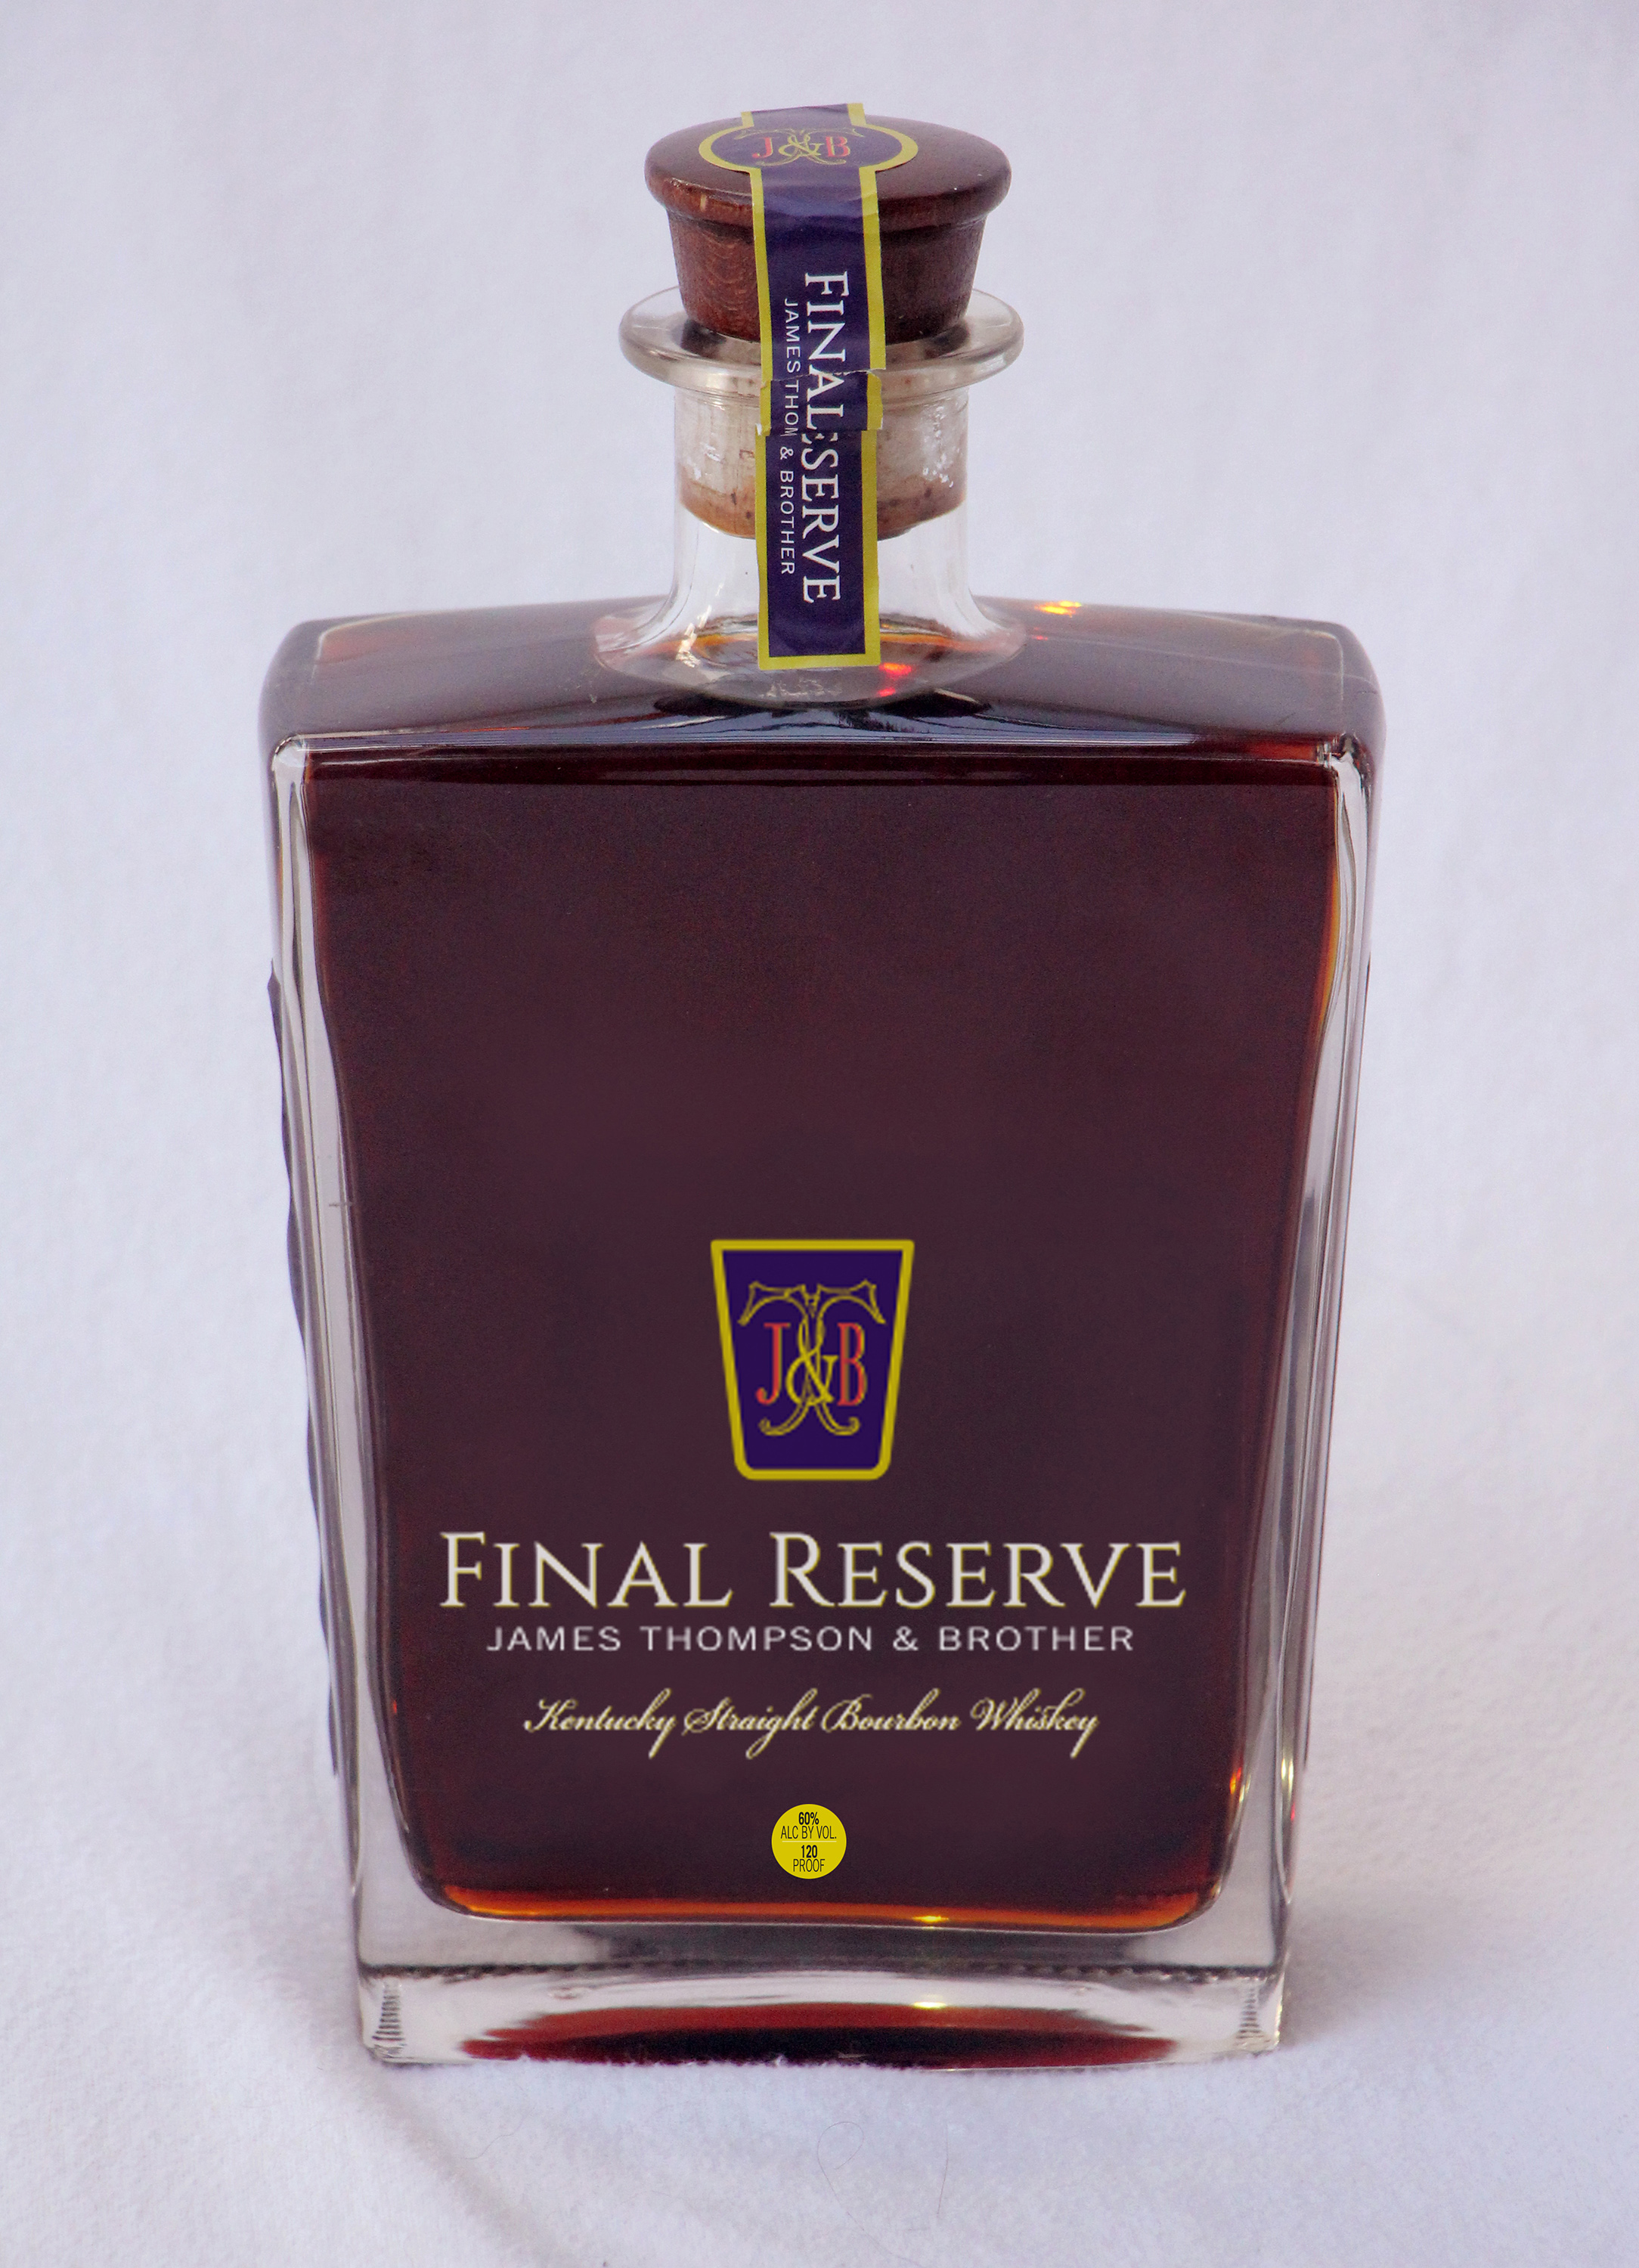 Final Reserve BottleIMG_9253.jpg